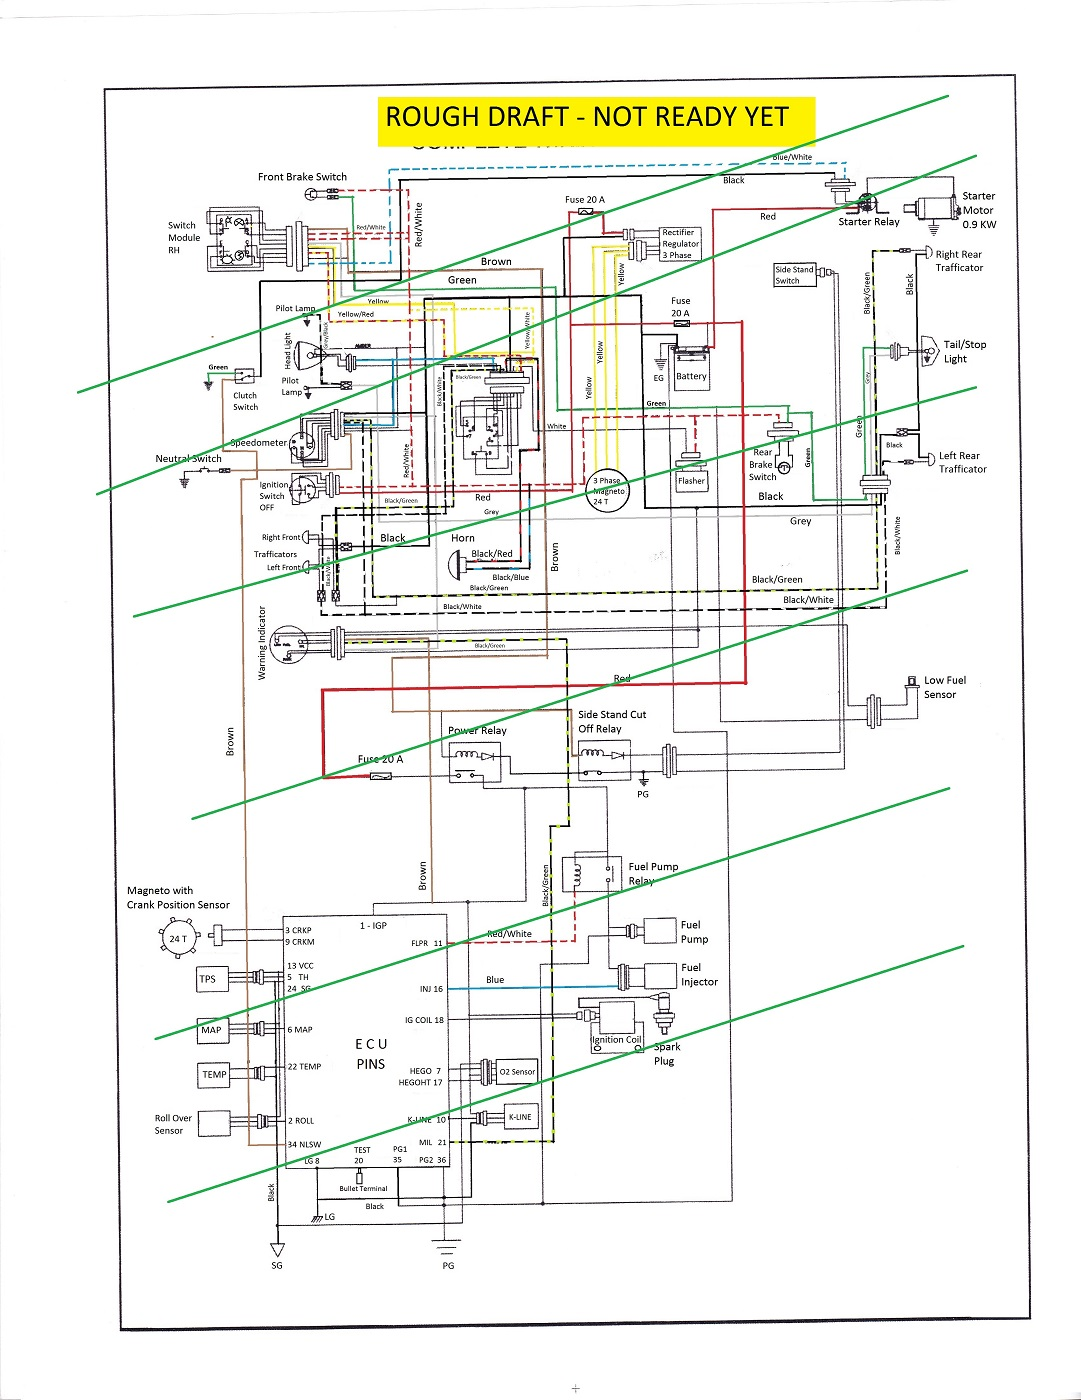 Royal Enfield Classic 350 Electrical Wiring Diagram ...